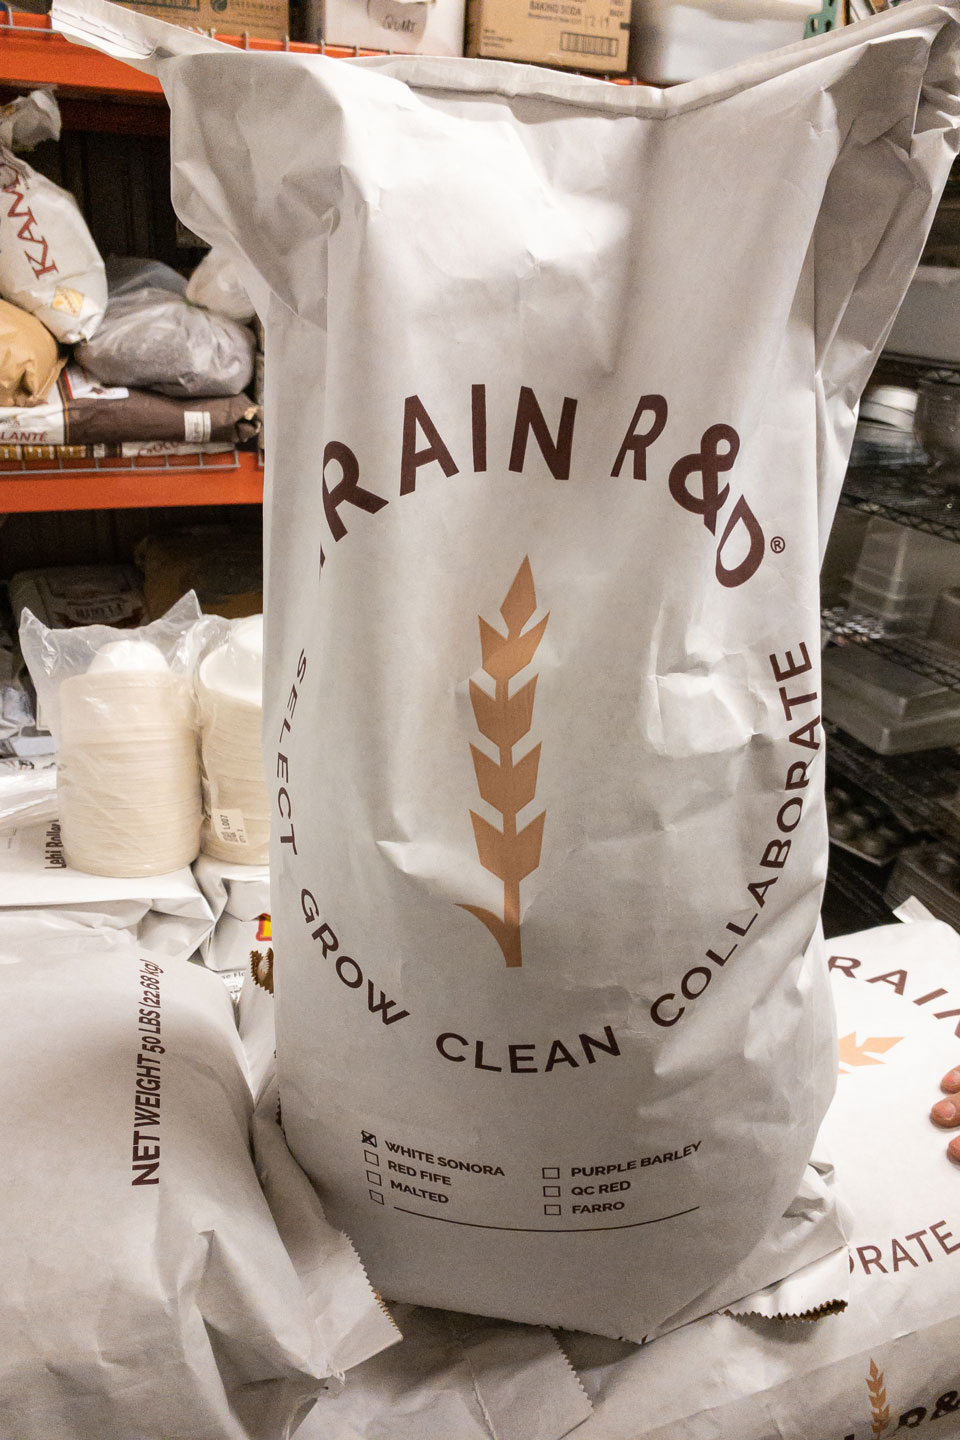 Grain R and D bag image